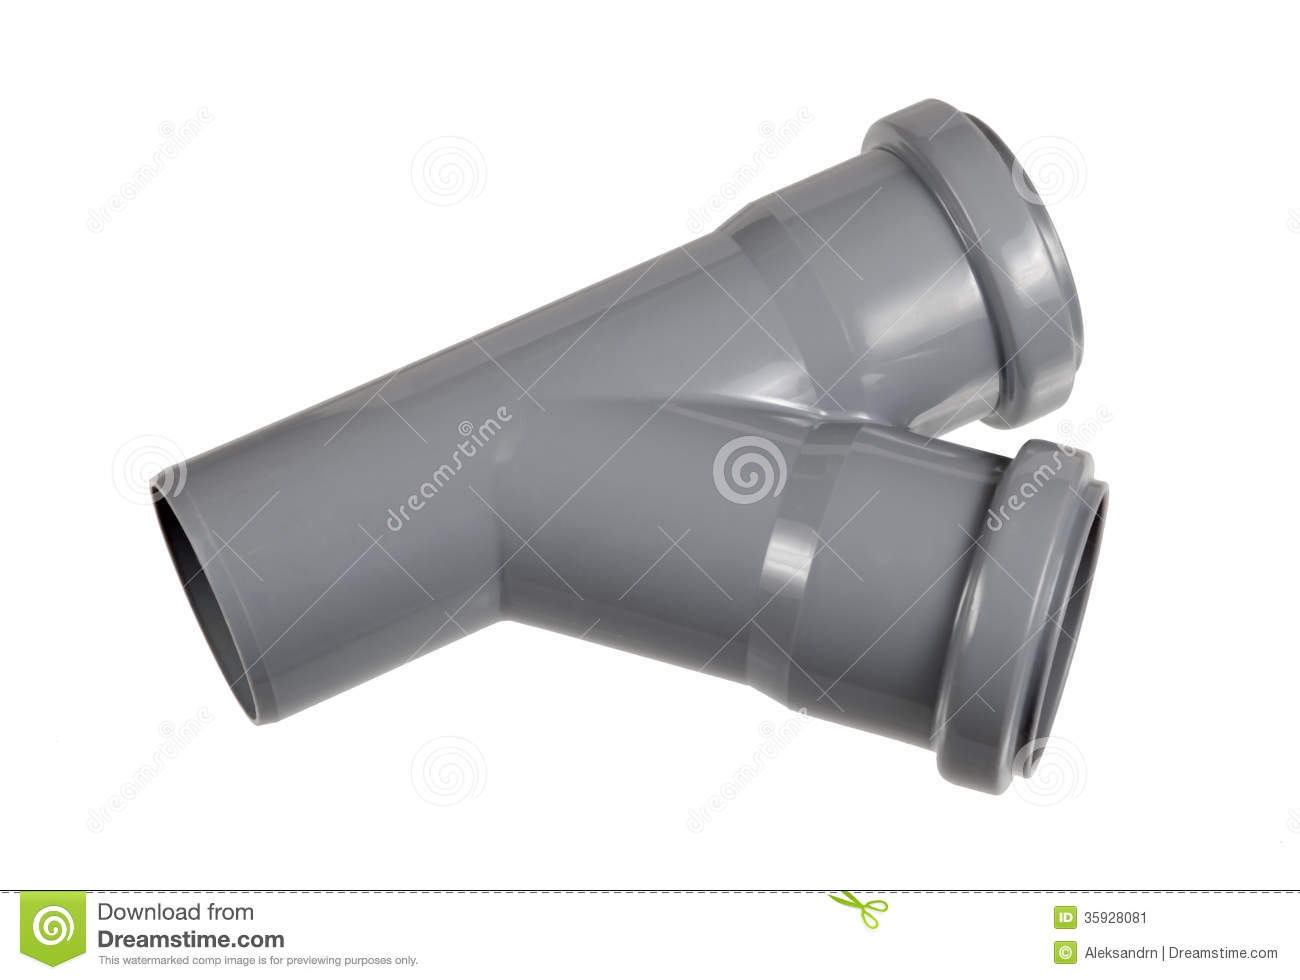 Pvc fitting a draining wye pipe angle stock image